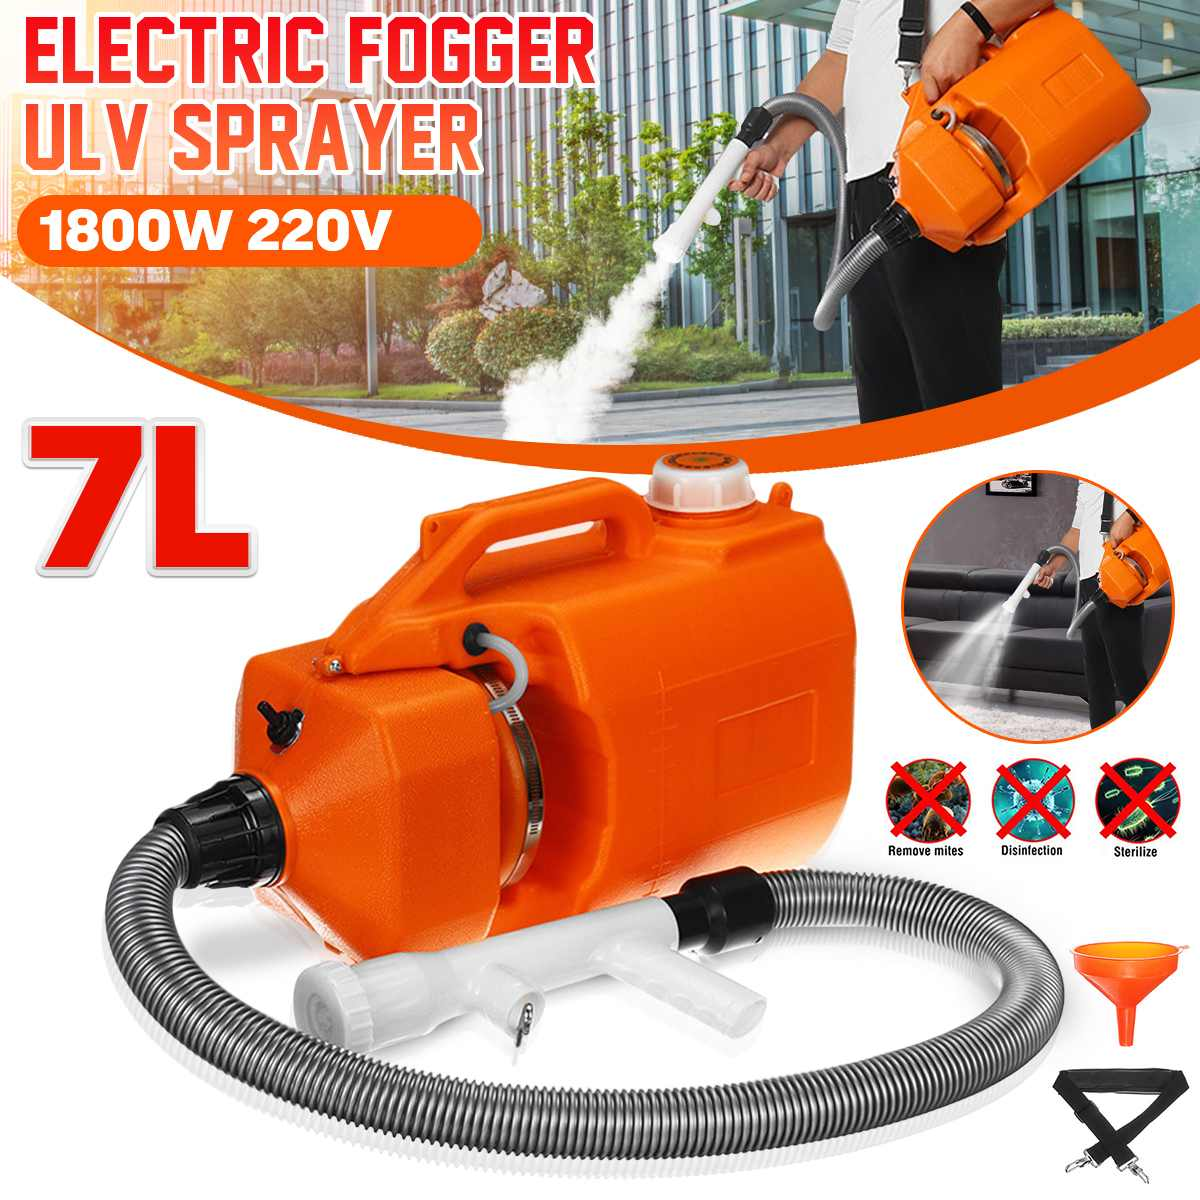 7L 220V Portable Electric ULV Sprayer Fogger Machine Mosquito Fogging Machine Ultra Low Capacity Disinfection Camping Equipment